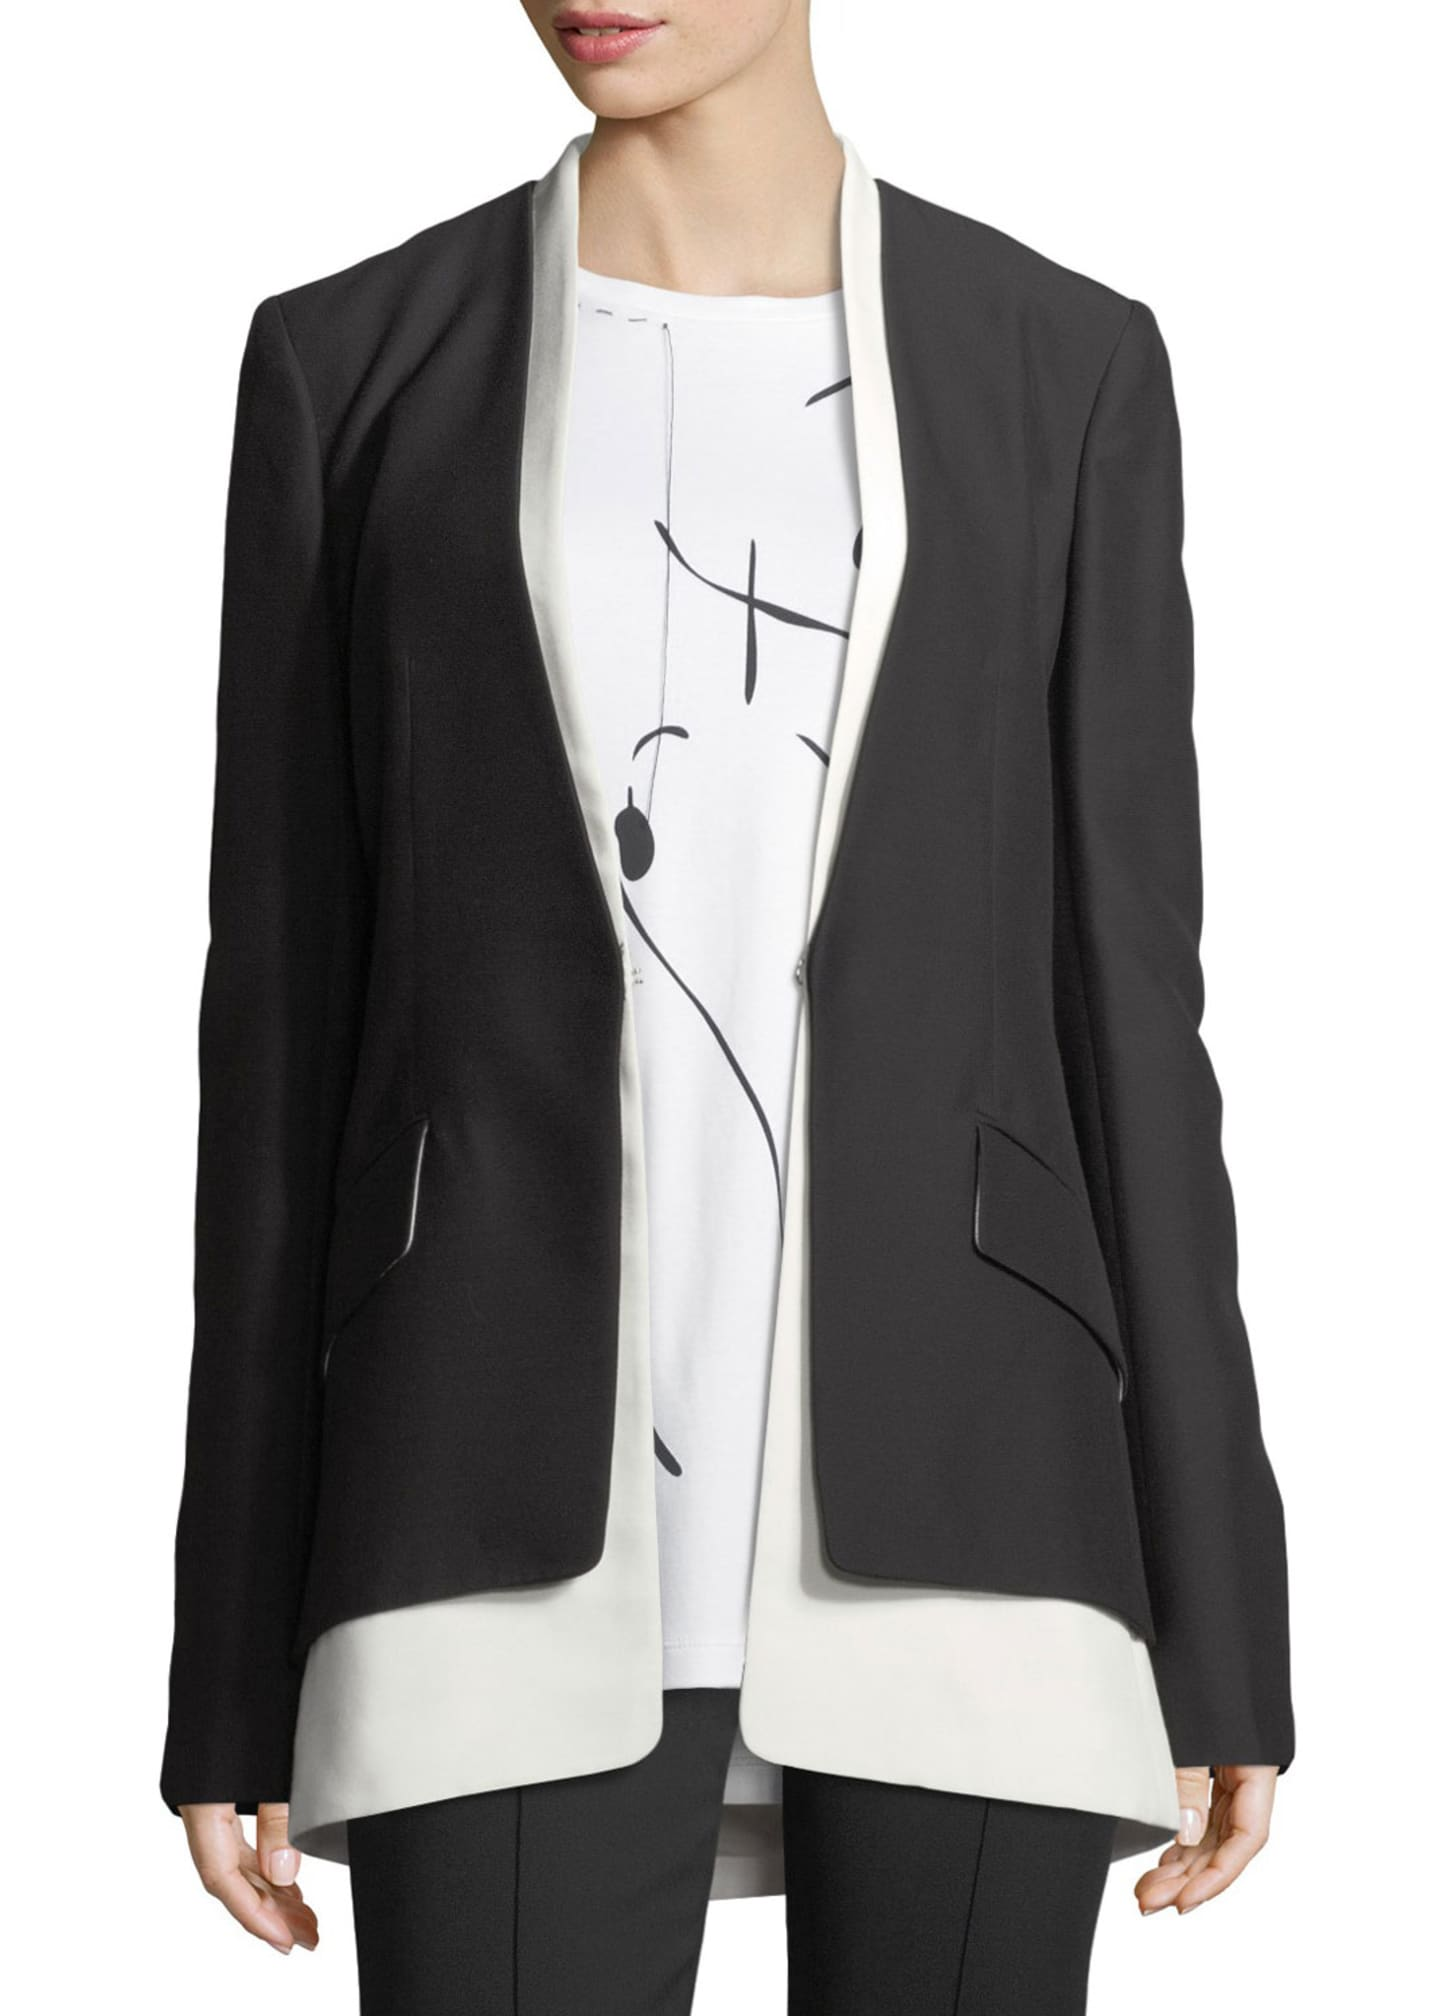 Derek Lam Layered Two-Tone Cady Blazer